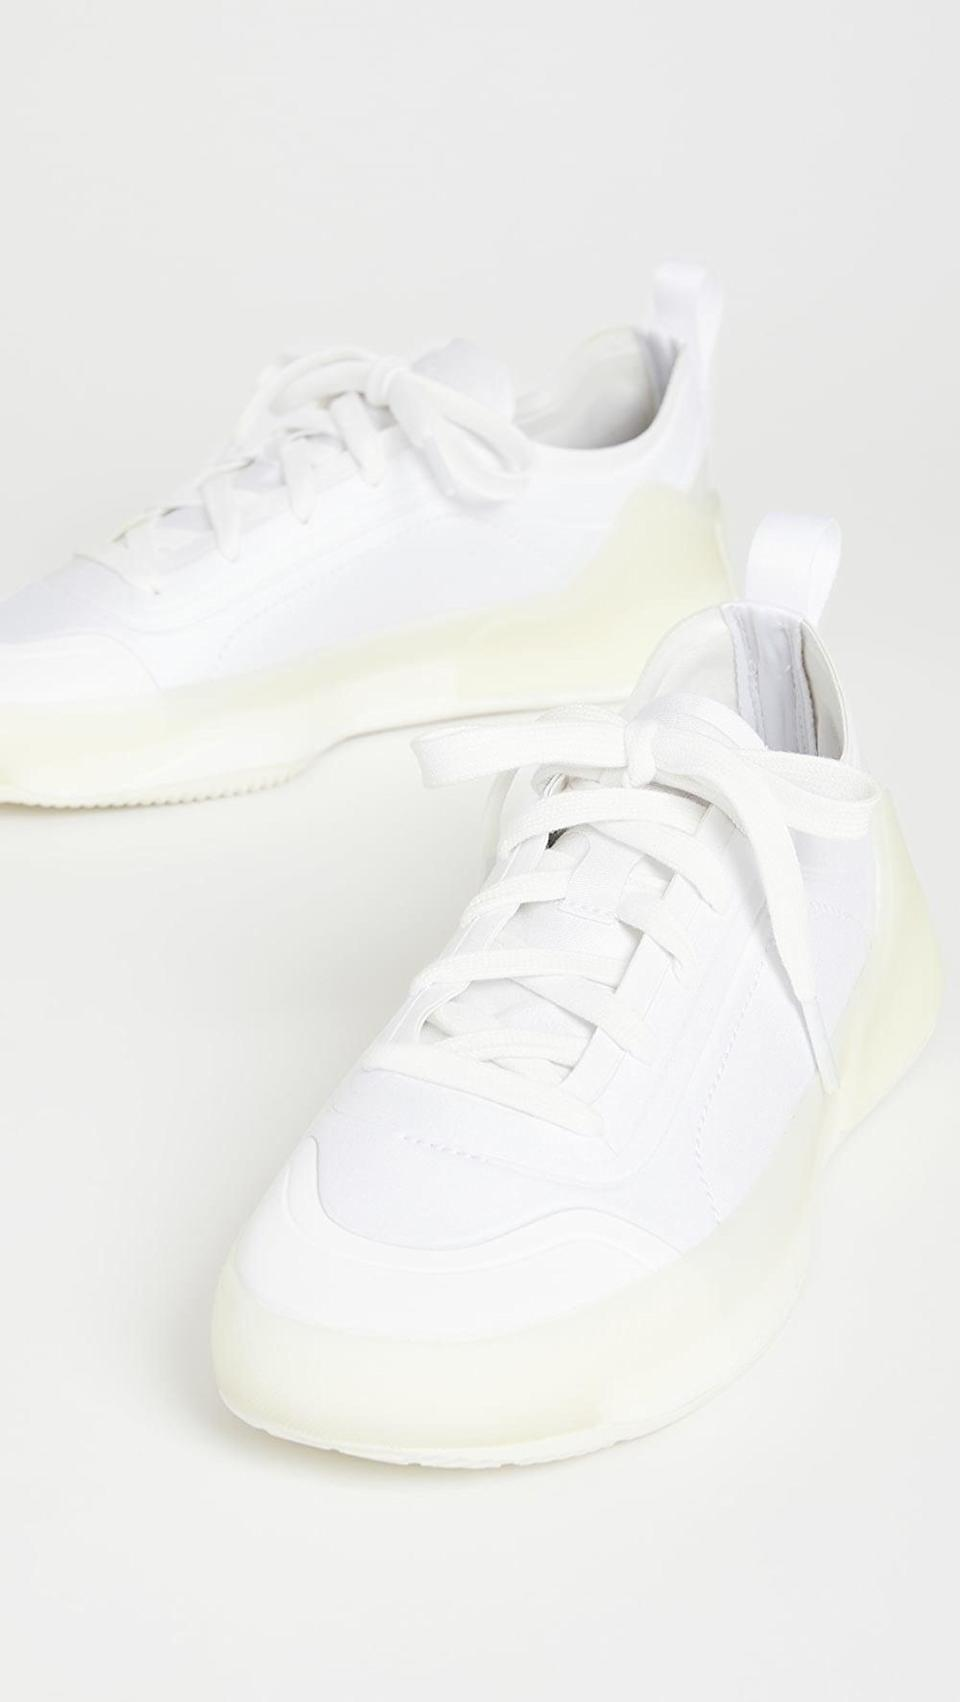 "<p><span>Adidas by Stella McCartney Asmc Treino Sneakers</span> ($180)</p> <p>""I'm all about athletic sneakers these days, I rock them with leggings, sweatsuits, jeans, and even trousers. I want something new that's not too athletic but still sporty and stylish and these asneakers are the ones. Not only do they look cool, but I know they'll be comfy and perfect everyday."" - Krista Jones, associate editor, Shop</p>"